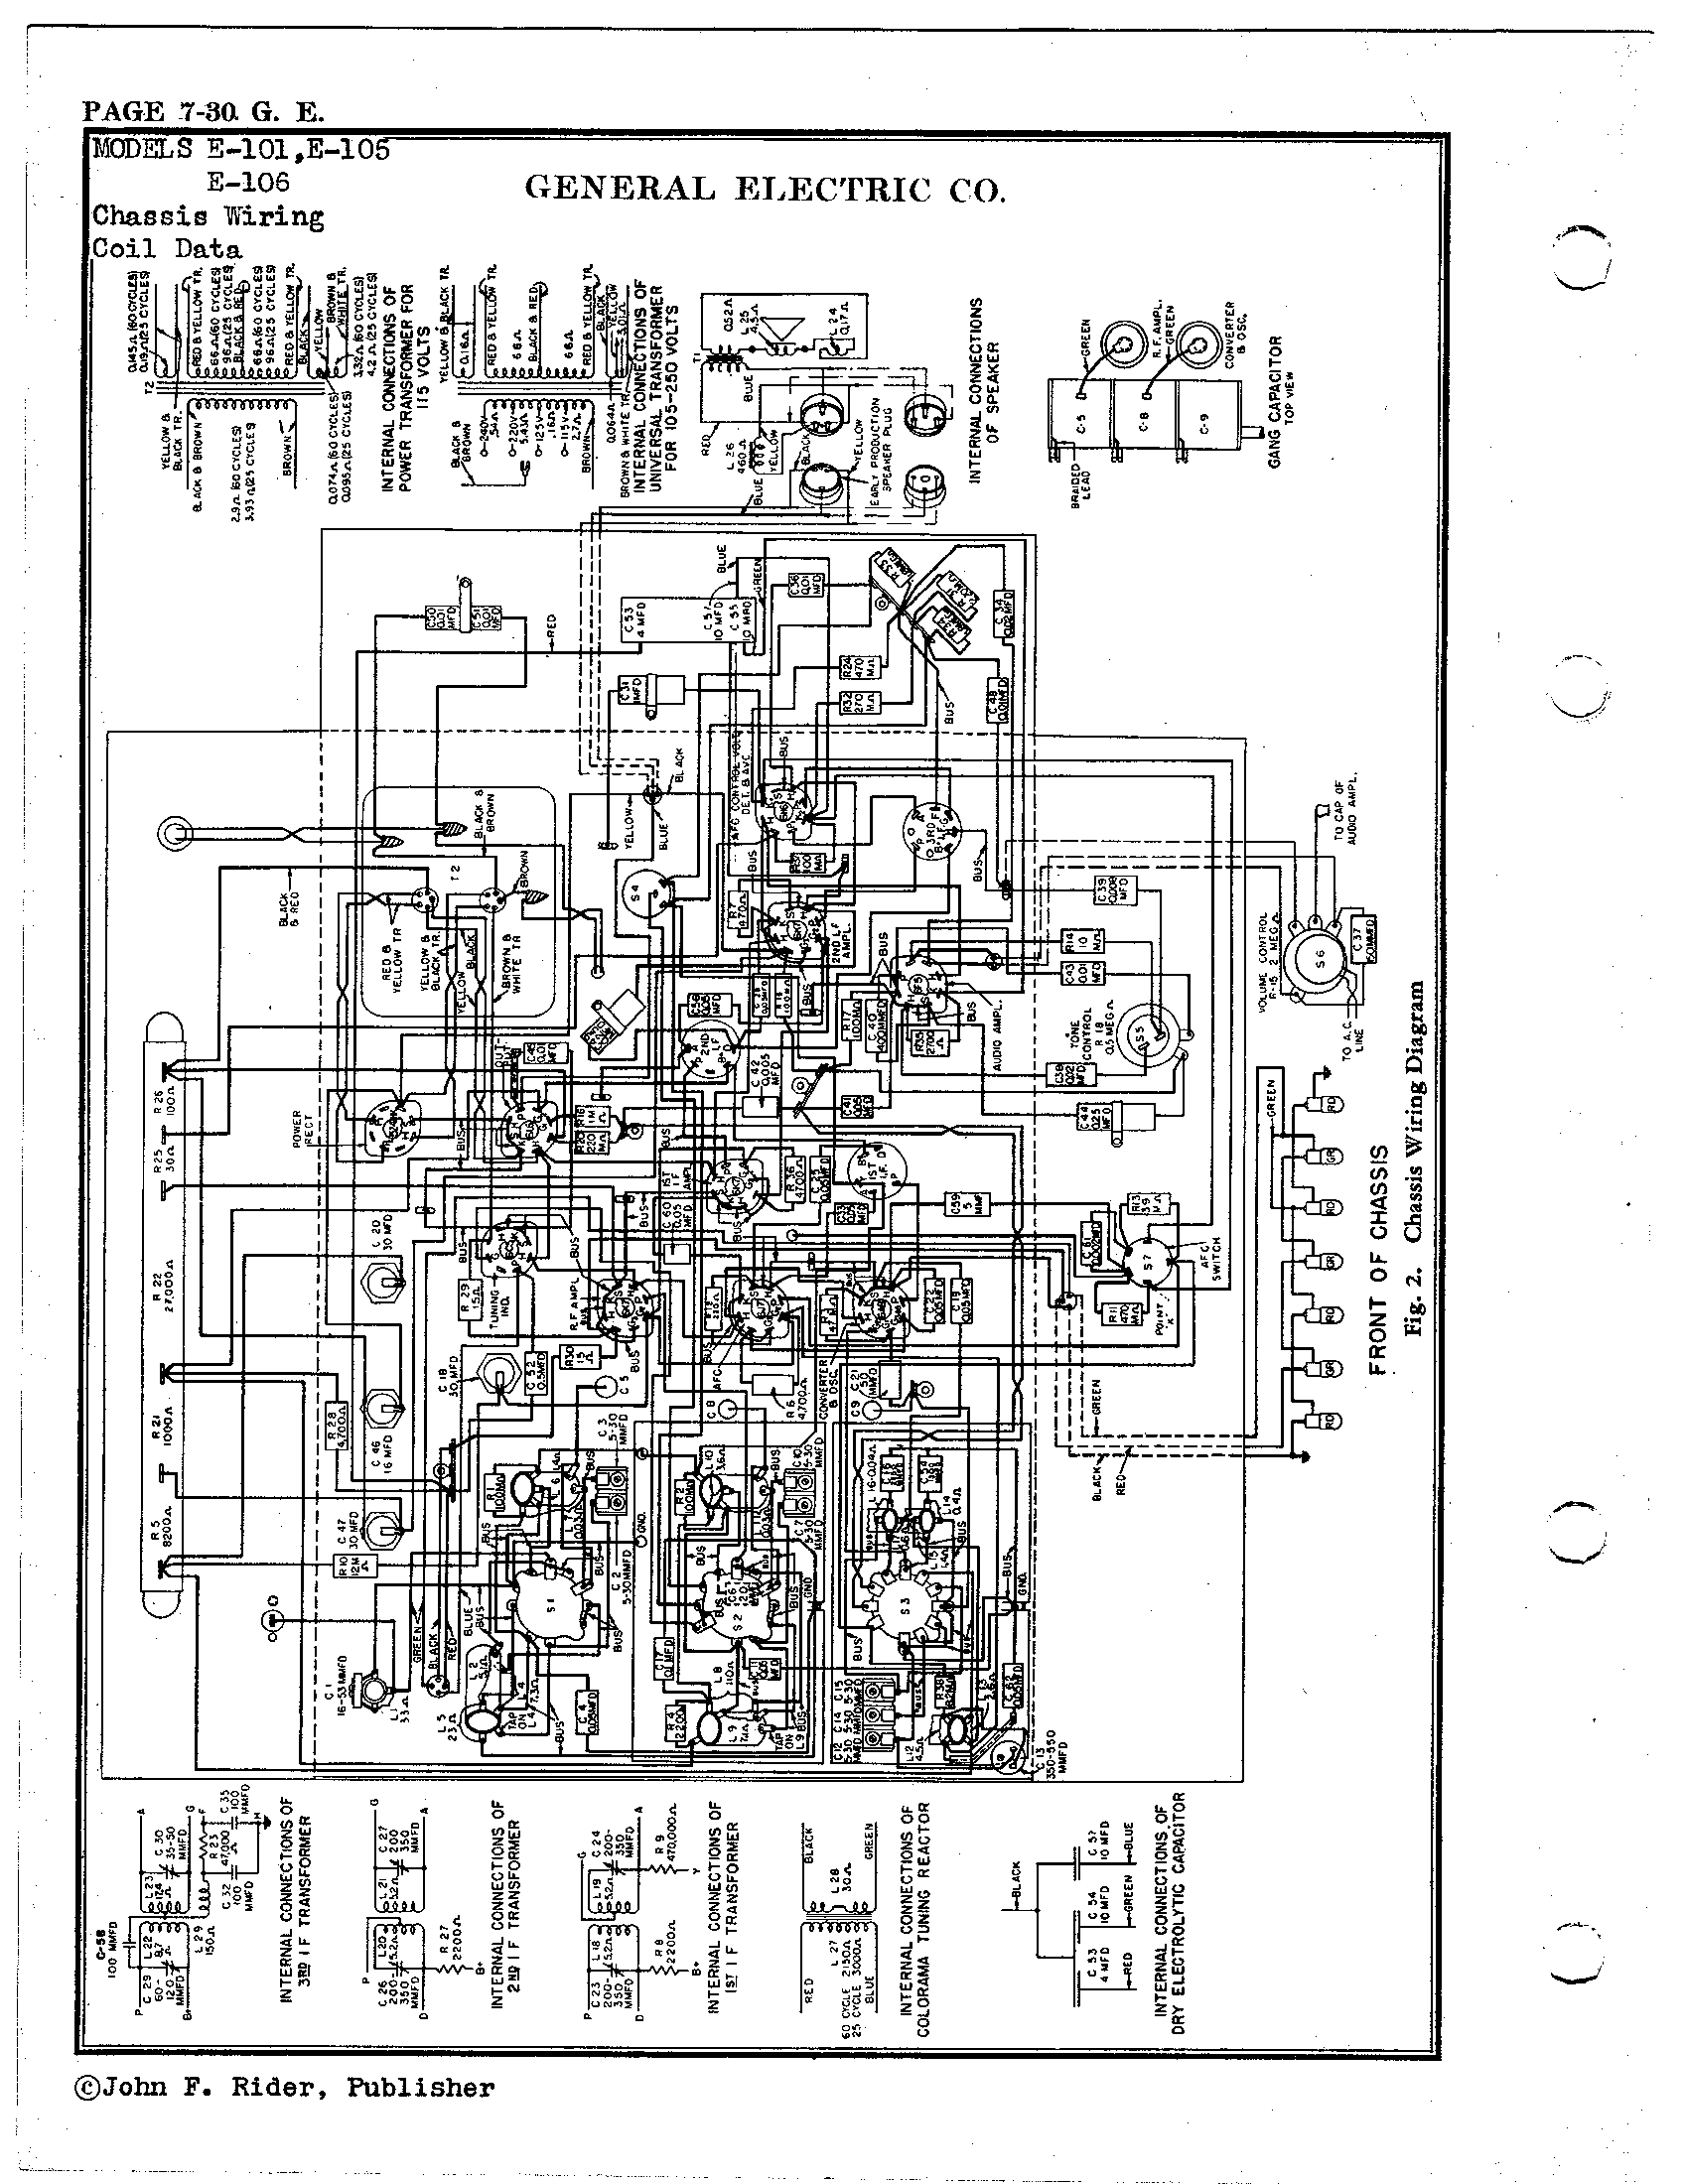 Reactor Transformer Wiring Diagram Plymouth Valiant Ac Wiring